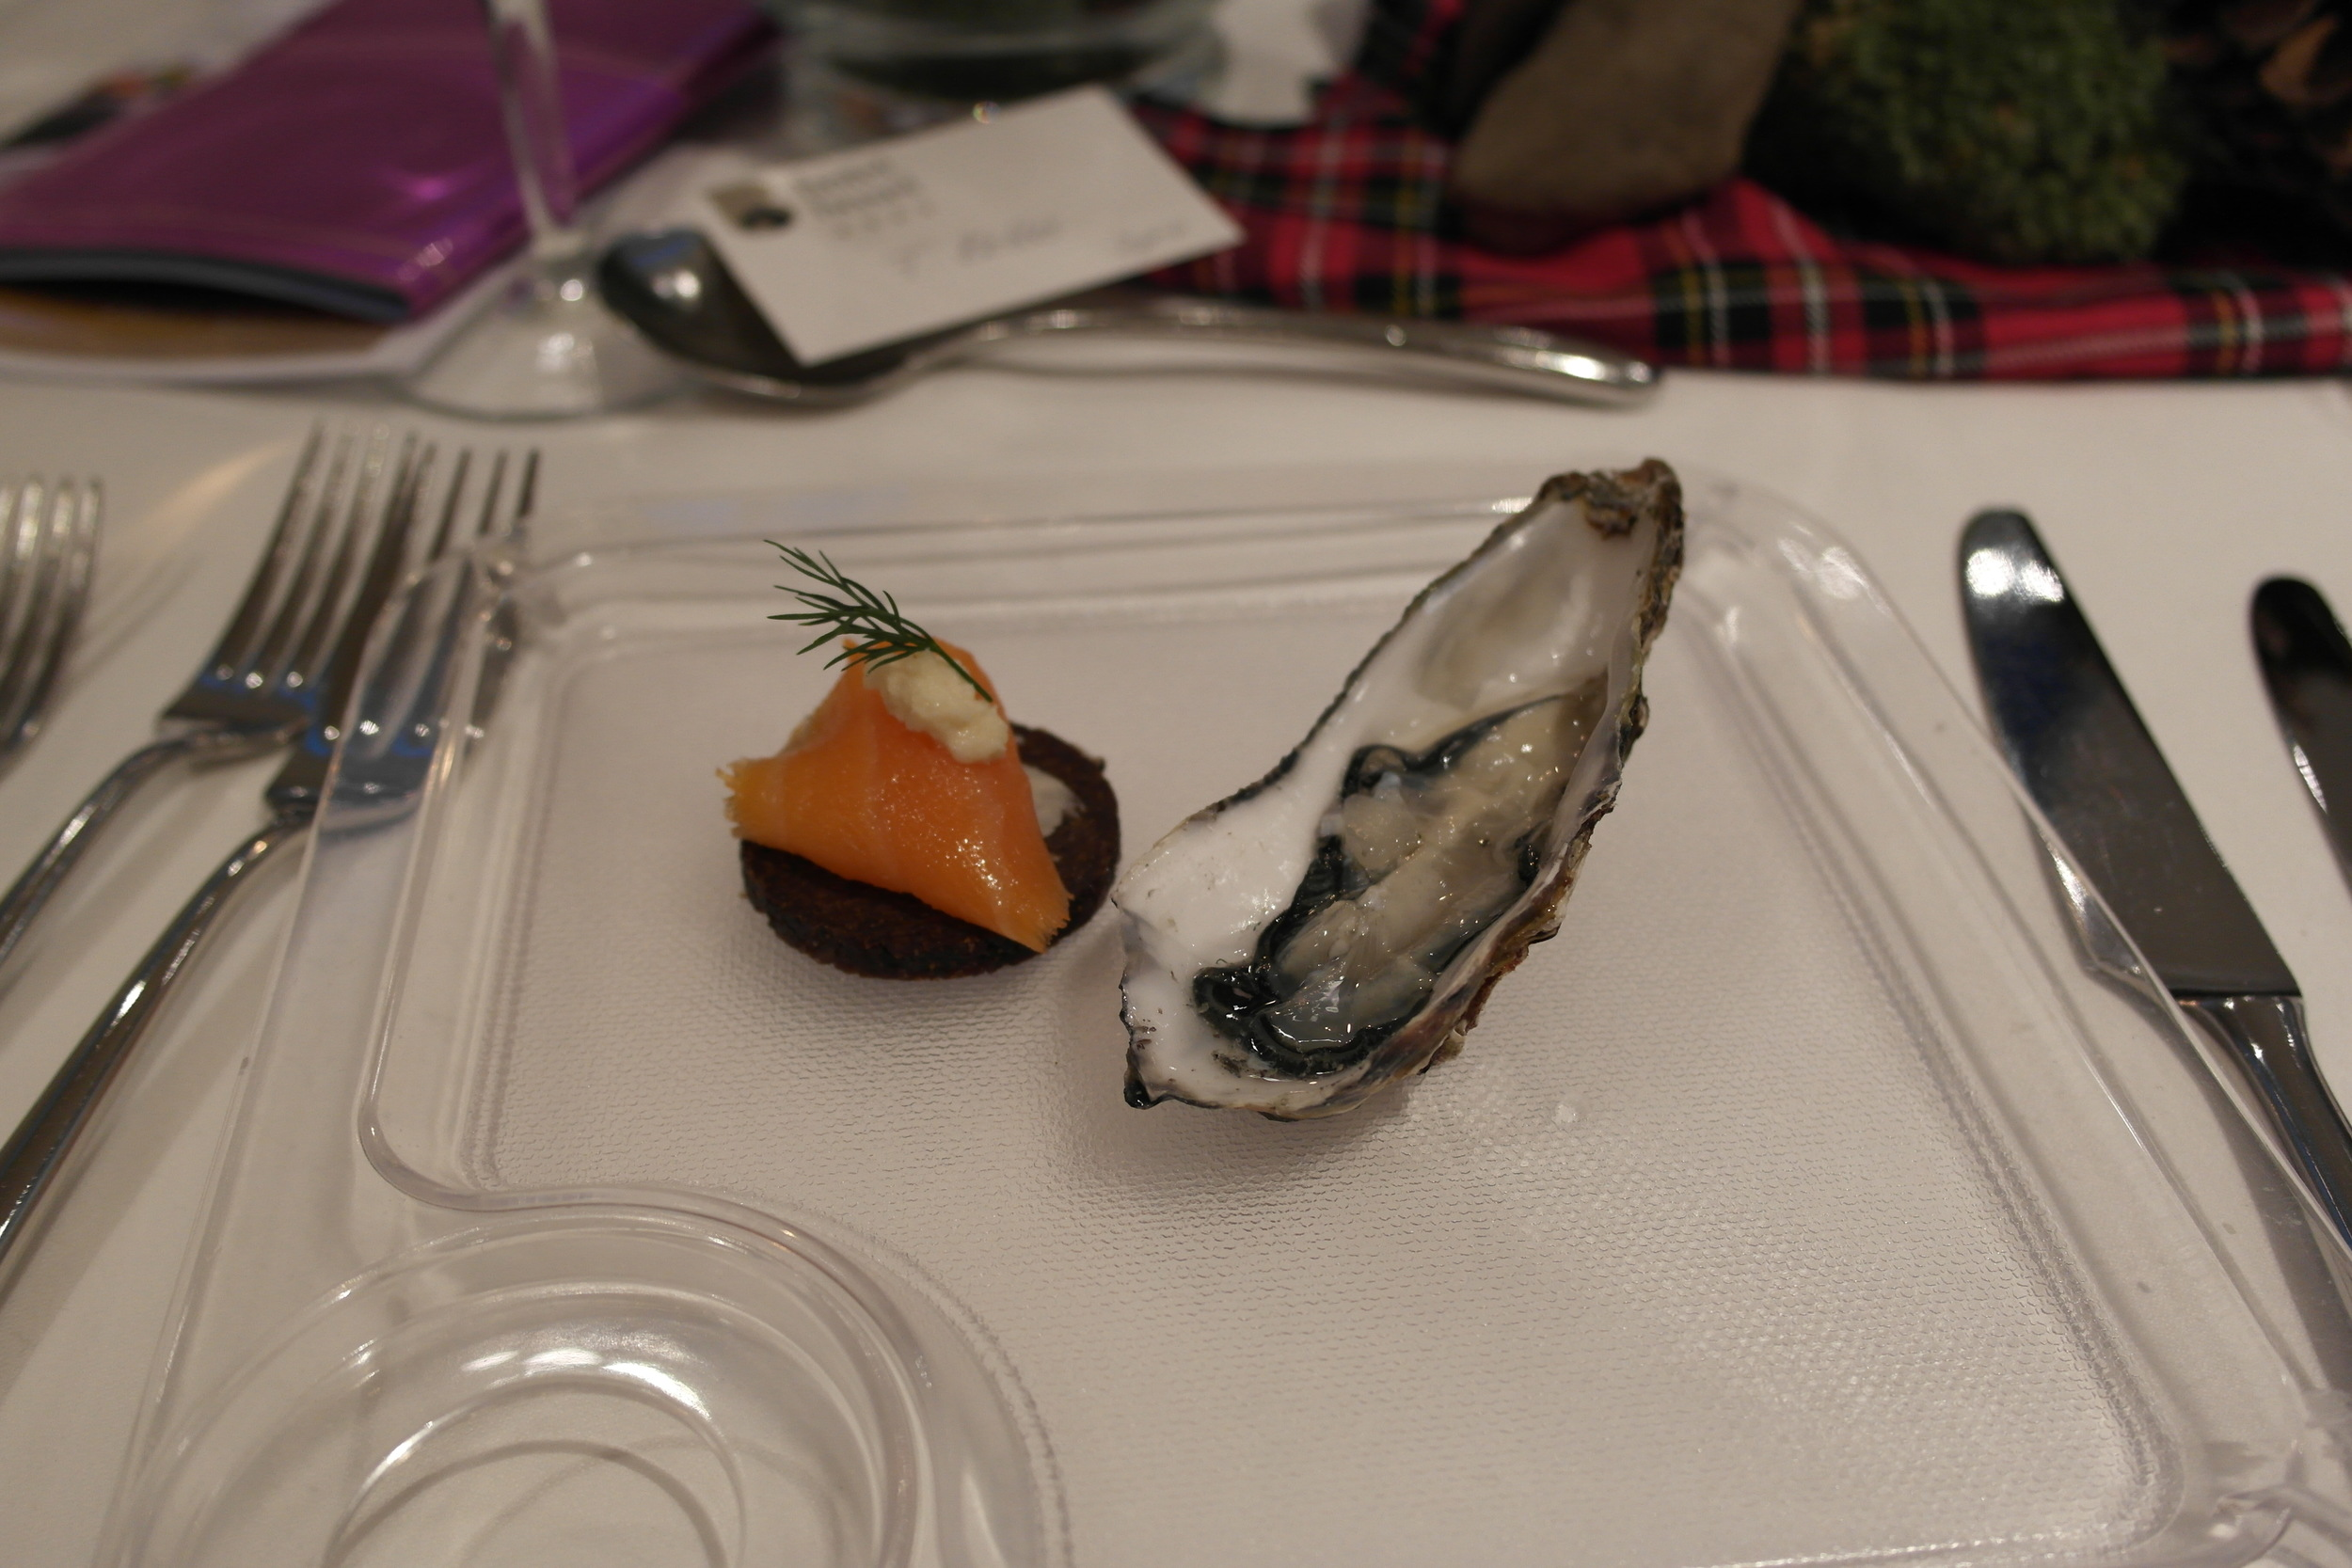 Scottish smoked salmon on dark rye bread and Loch Fyne oysters served with Pinot Blanc Wehlener Kosterberg Islay Cask 2012, Markus Molitor